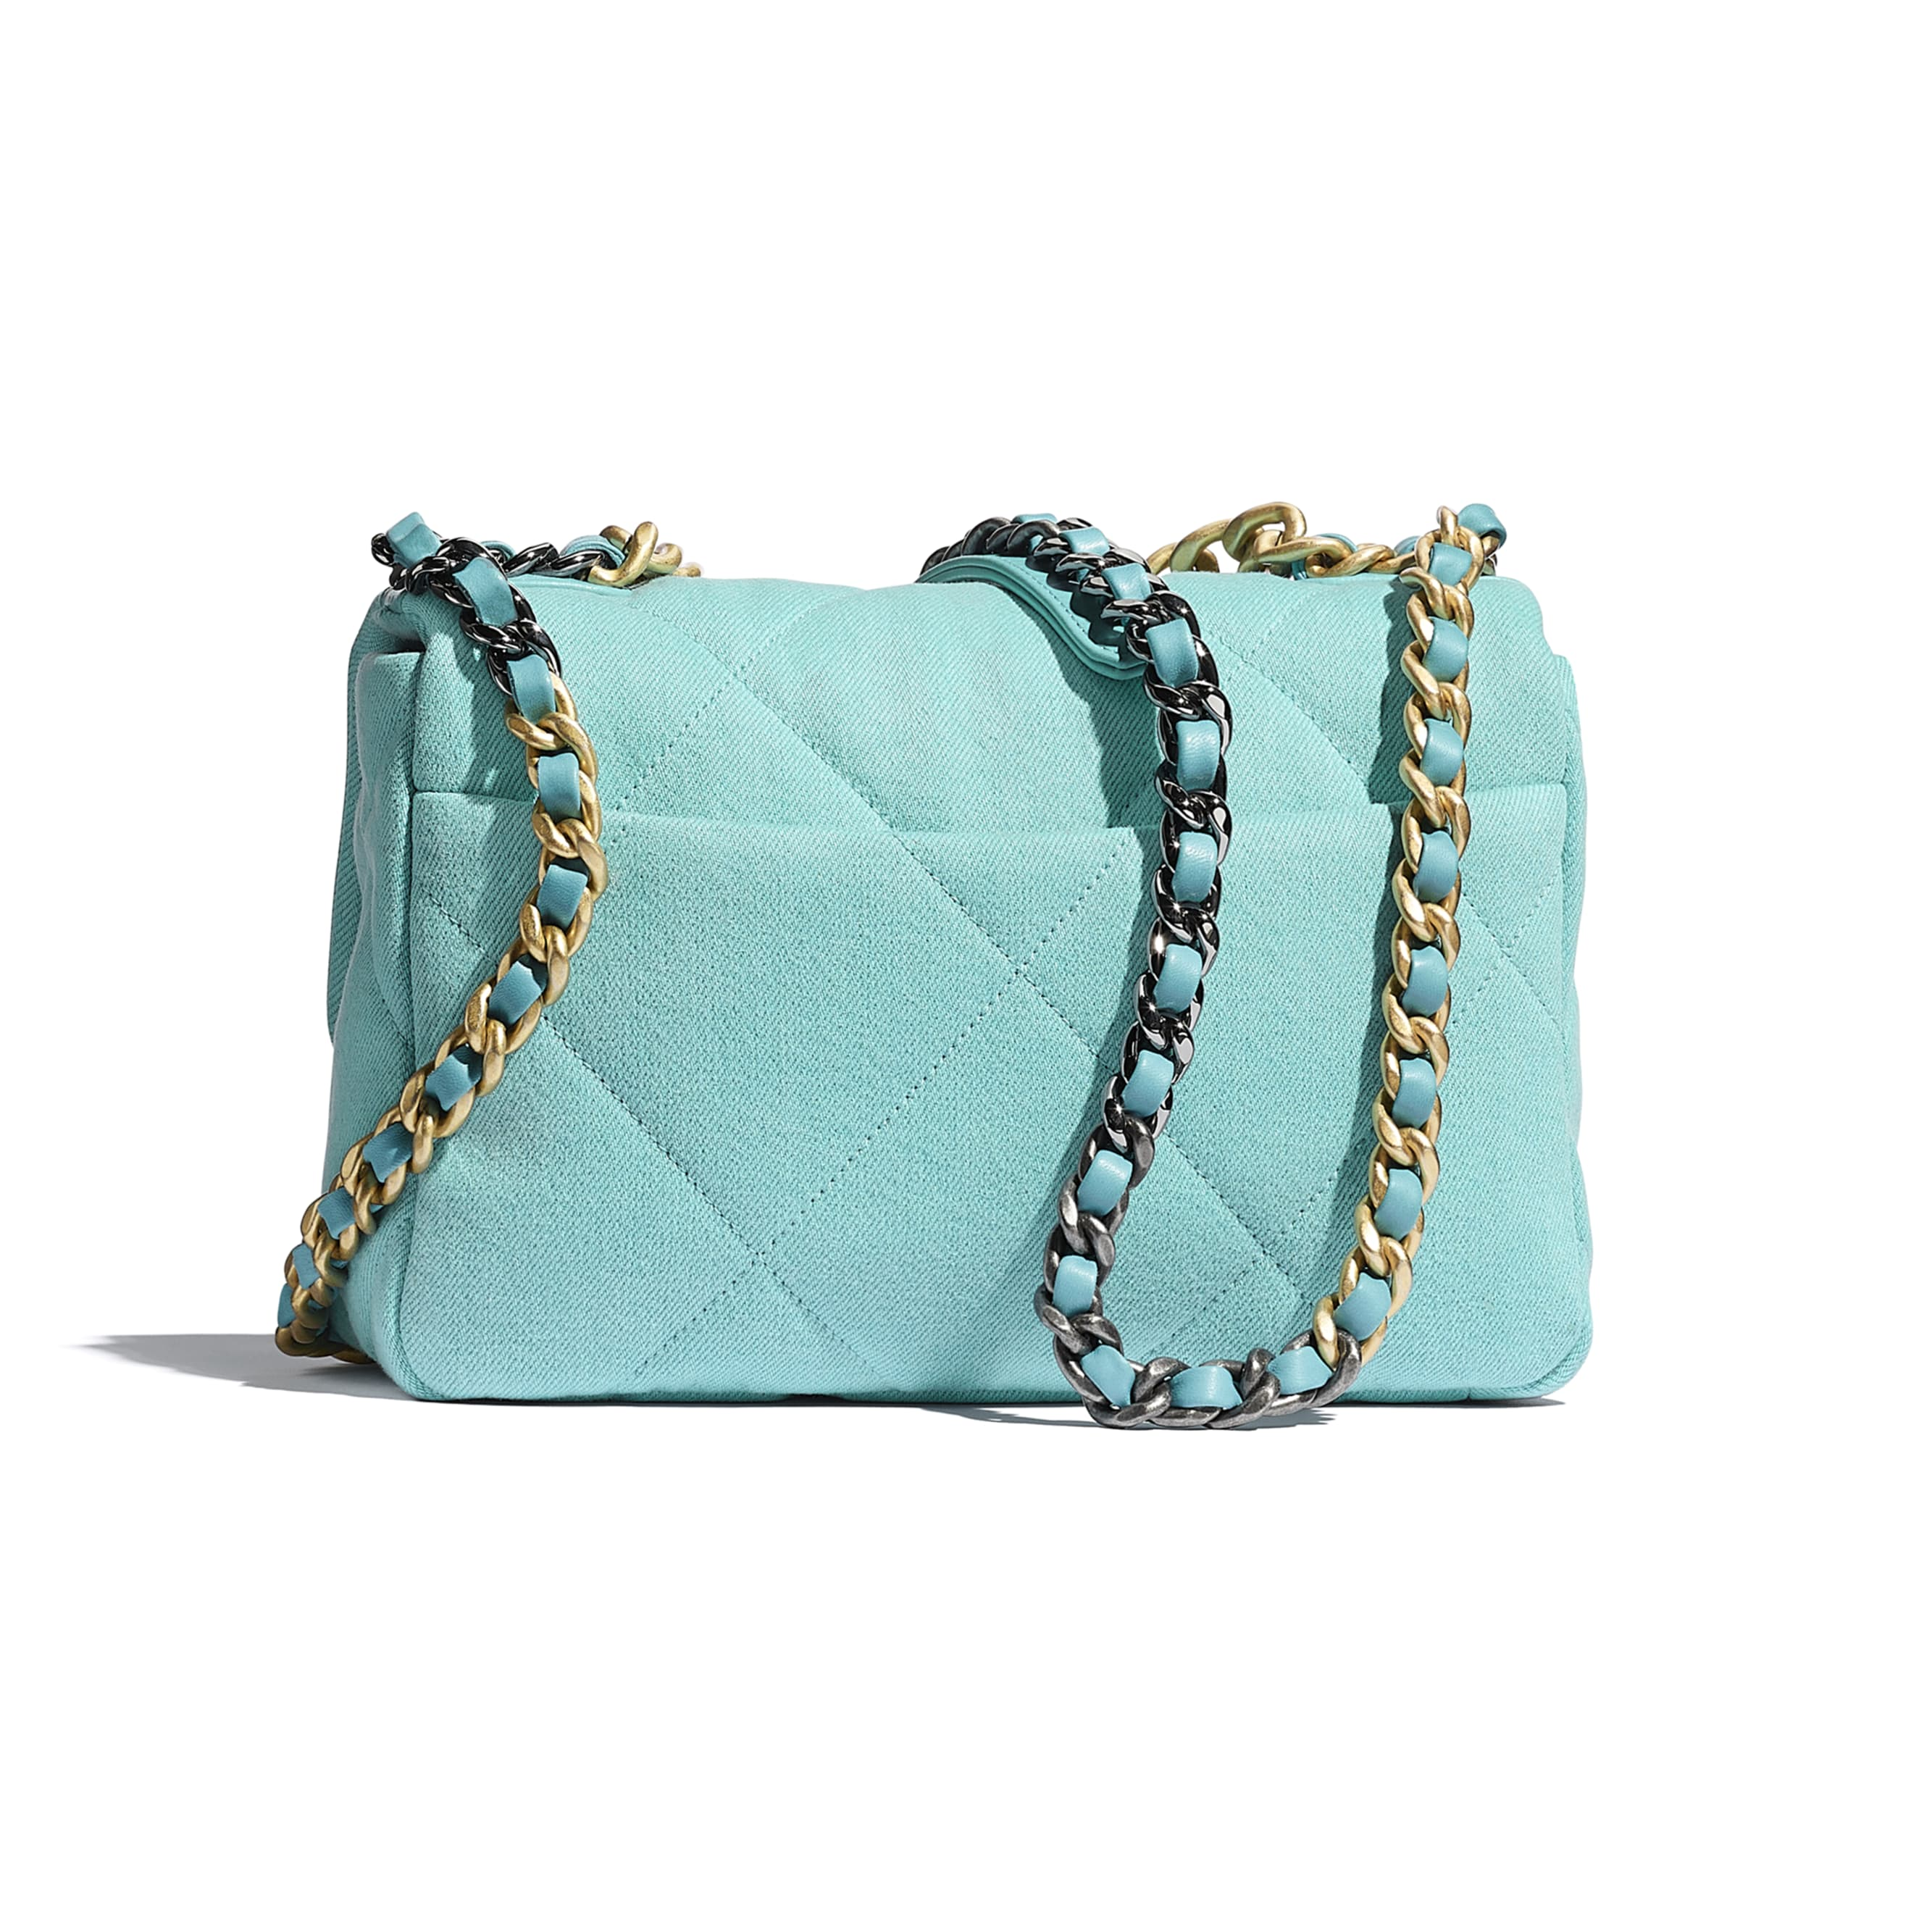 CHANEL 19 Handbag - Neon Blue - Denim, Calfskin, Gold-Tone, Silver-Tone & Ruthenium-Finish Metal - CHANEL - Alternative view - see standard sized version